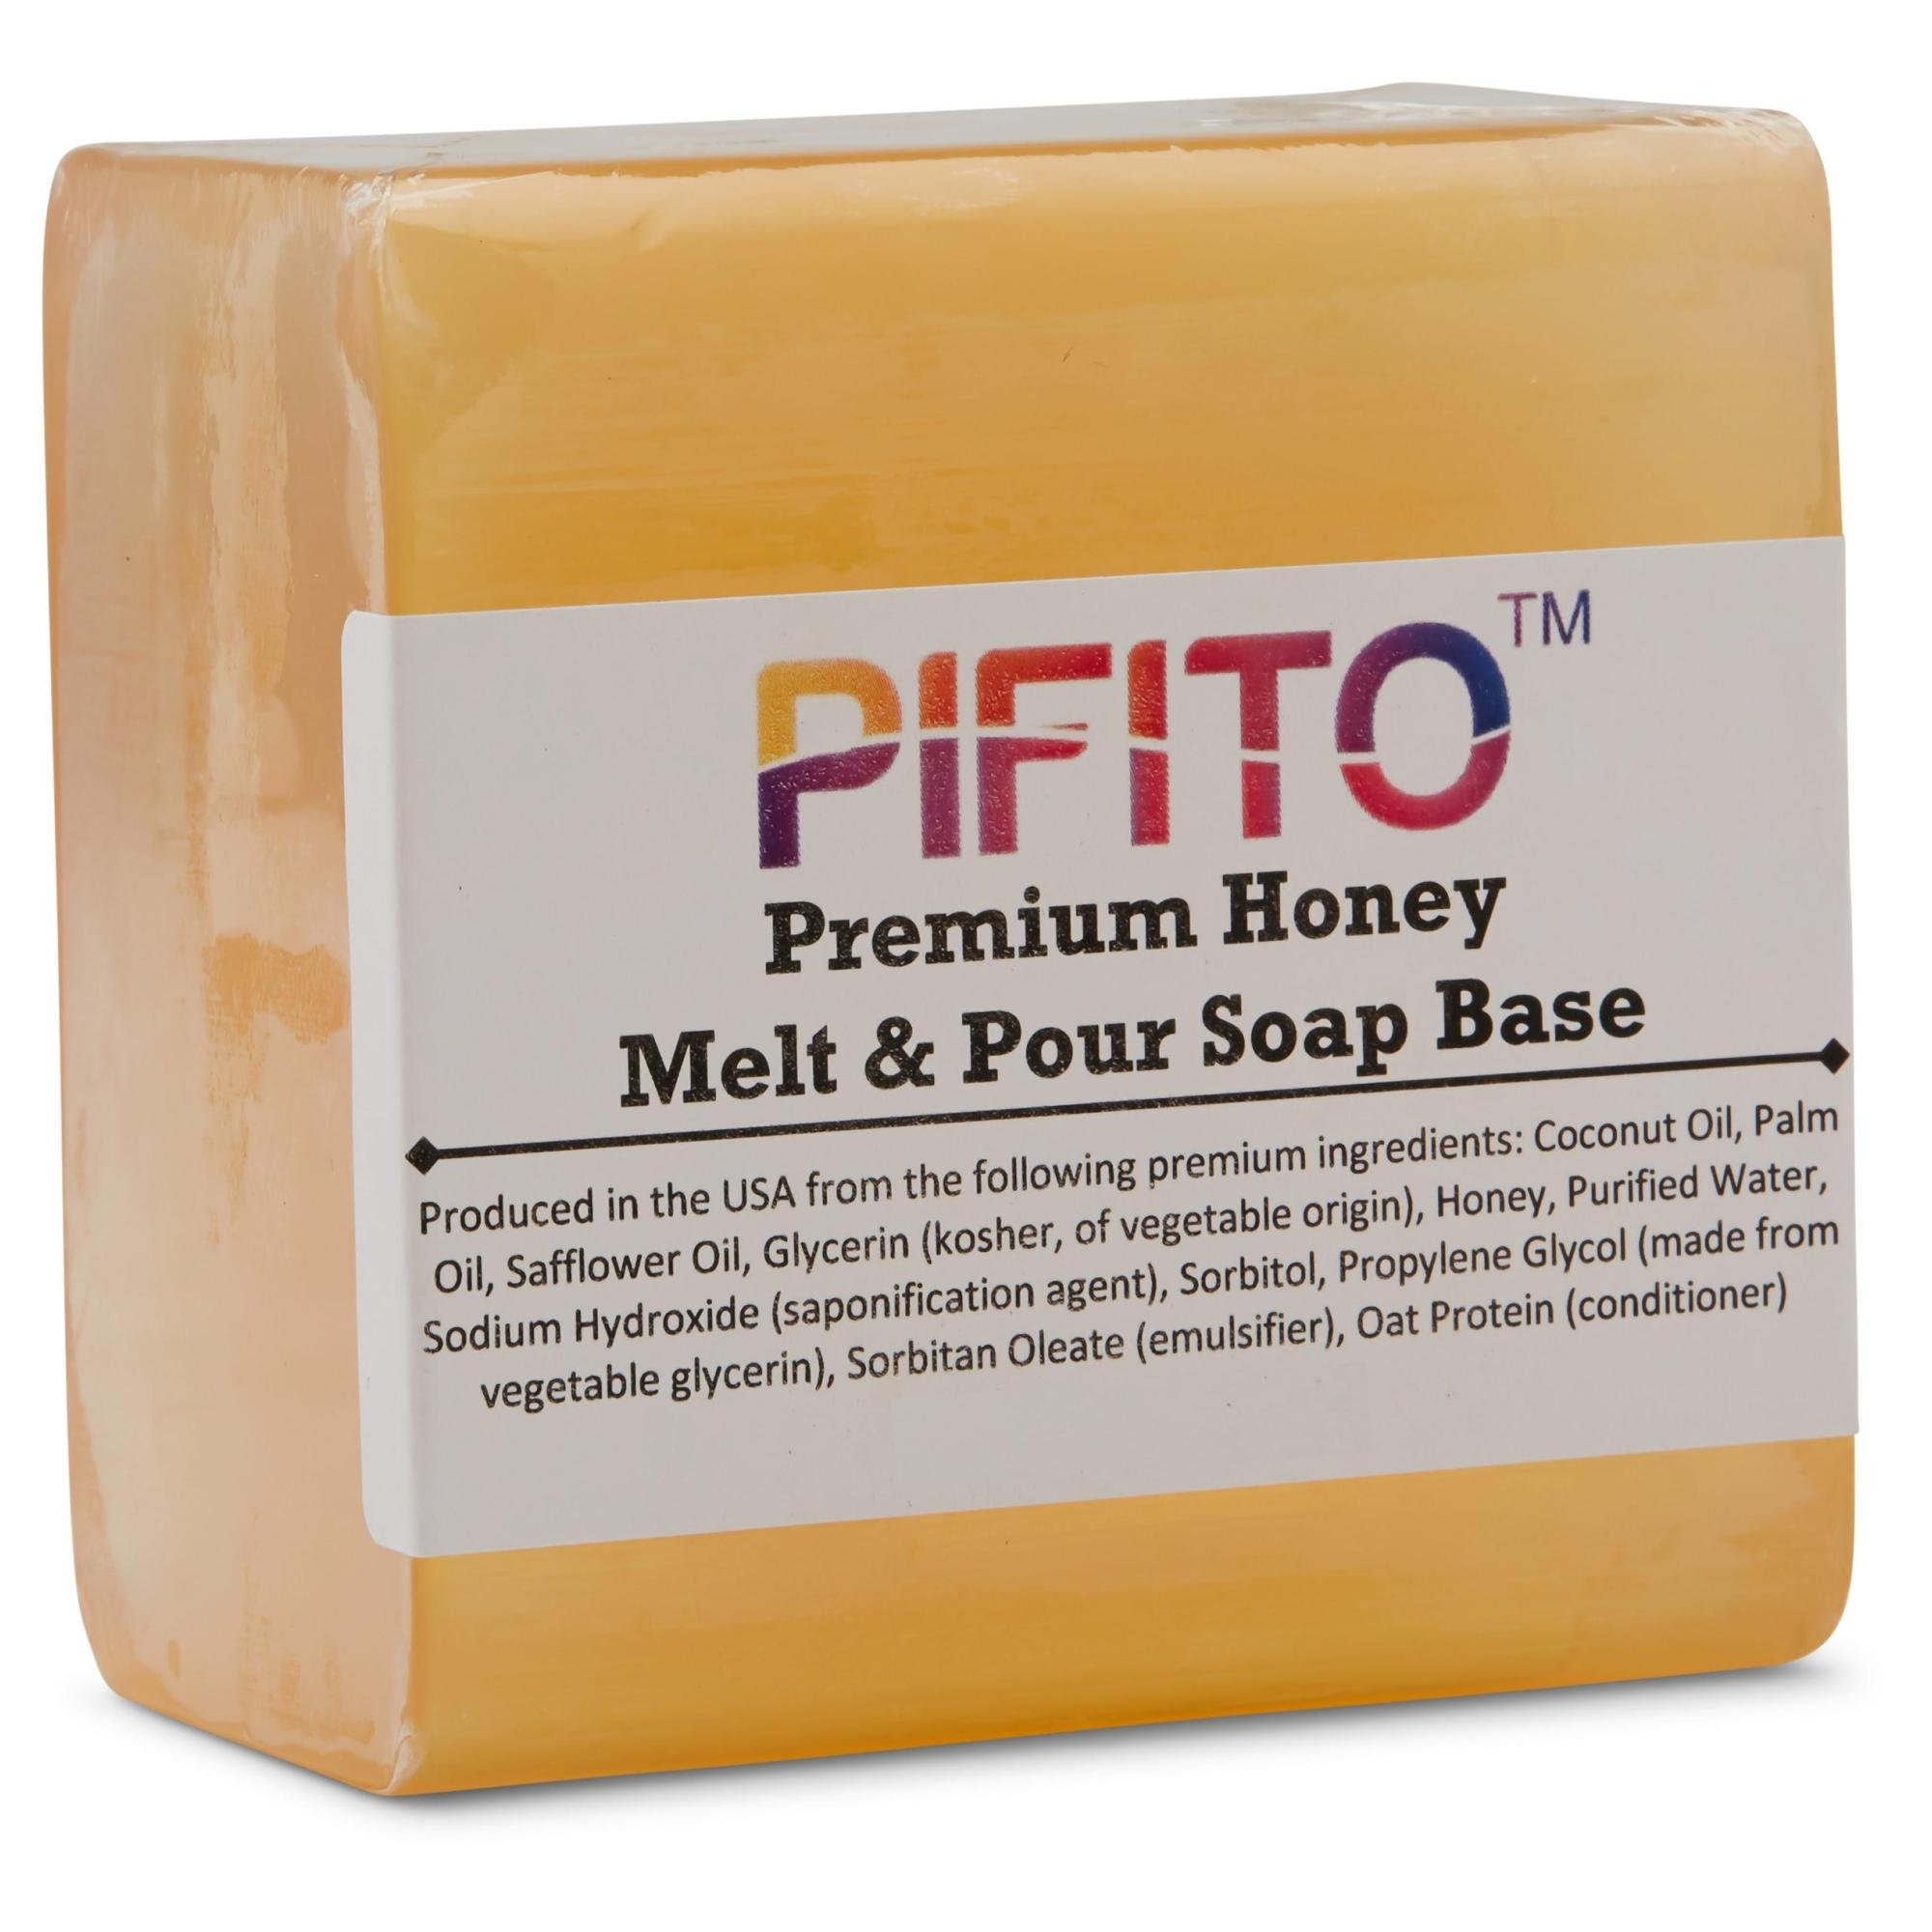 Pifito Premium Honey Melt and Pour Soap Base (2 lb) - Natural Vegetable Glycerin Soap Base - Excellent Hand Soap Making Supplies